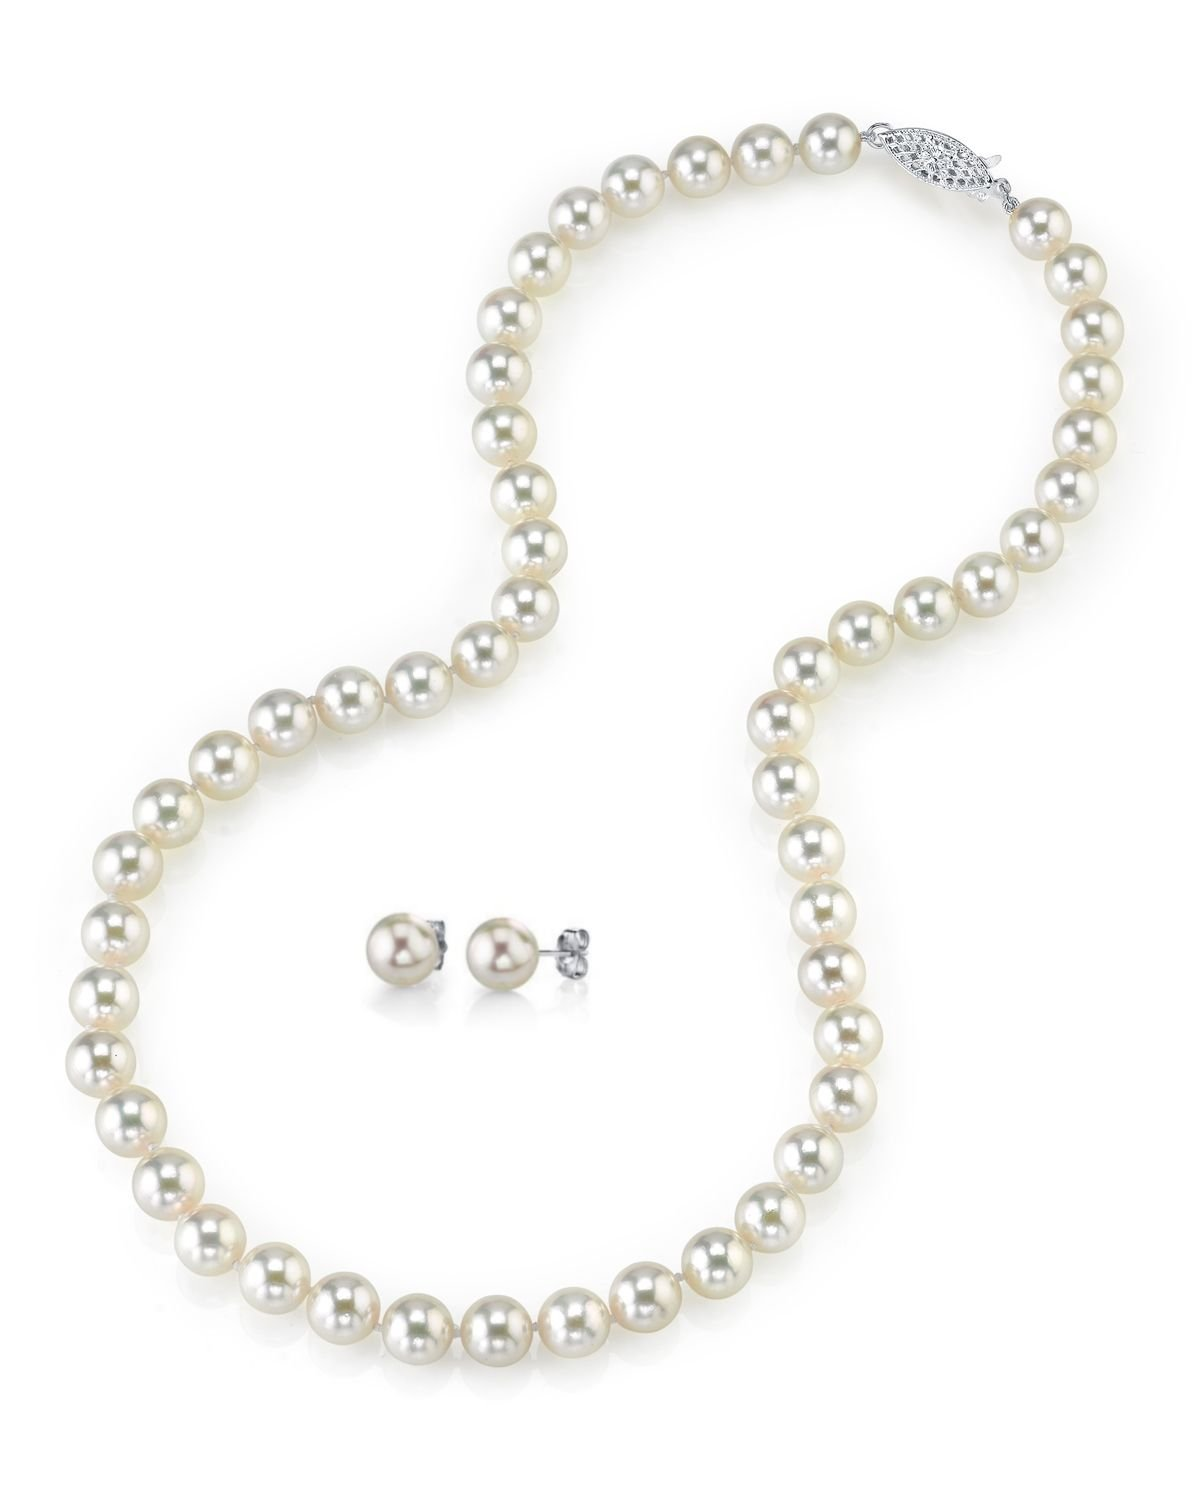 14K Gold 6.5-7.0mm White Akoya Cultured Pearl Necklace & Matching Earrings Set, 18'' Length- AAA Quality